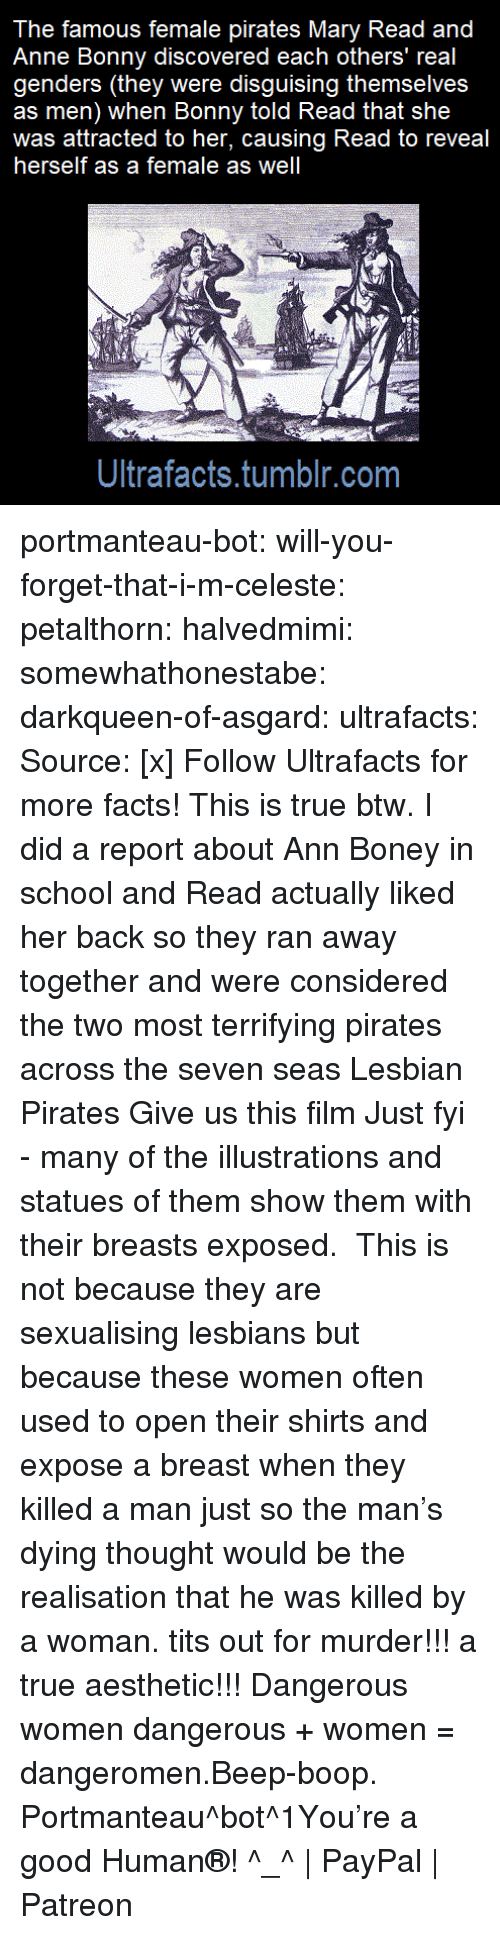 Facts, Lesbians, and School: The famous female pirates Mary Read and  Anne Bonny discovered each others' real  genders (they were disguising themselves  as men) when Bonny told Read that she  was attracted to her, causing Read to reveal  herself as a female as well  Ultrafacts.tumblr.com portmanteau-bot:  will-you-forget-that-i-m-celeste:  petalthorn: halvedmimi:  somewhathonestabe:  darkqueen-of-asgard:   ultrafacts:  Source: [x] Follow Ultrafacts for more facts!   This is true btw. I did a report about Ann Boney in school and Read actually liked her back so they ran away together and were considered the two most terrifying pirates across the seven seas   Lesbian Pirates  Give us this film  Just fyi - many of the illustrations and statues of them show them with their breasts exposed. This is not because they are sexualising lesbians but because these women often used to open their shirts and expose a breast when they killed a man just so the man's dying thought would be the realisation that he was killed by a woman.    tits out for murder!!! a true aesthetic!!!   Dangerous women   dangerous + women = dangeromen.Beep-boop. Portmanteau^bot^1You're a good Human®! ^_^ | PayPal | Patreon